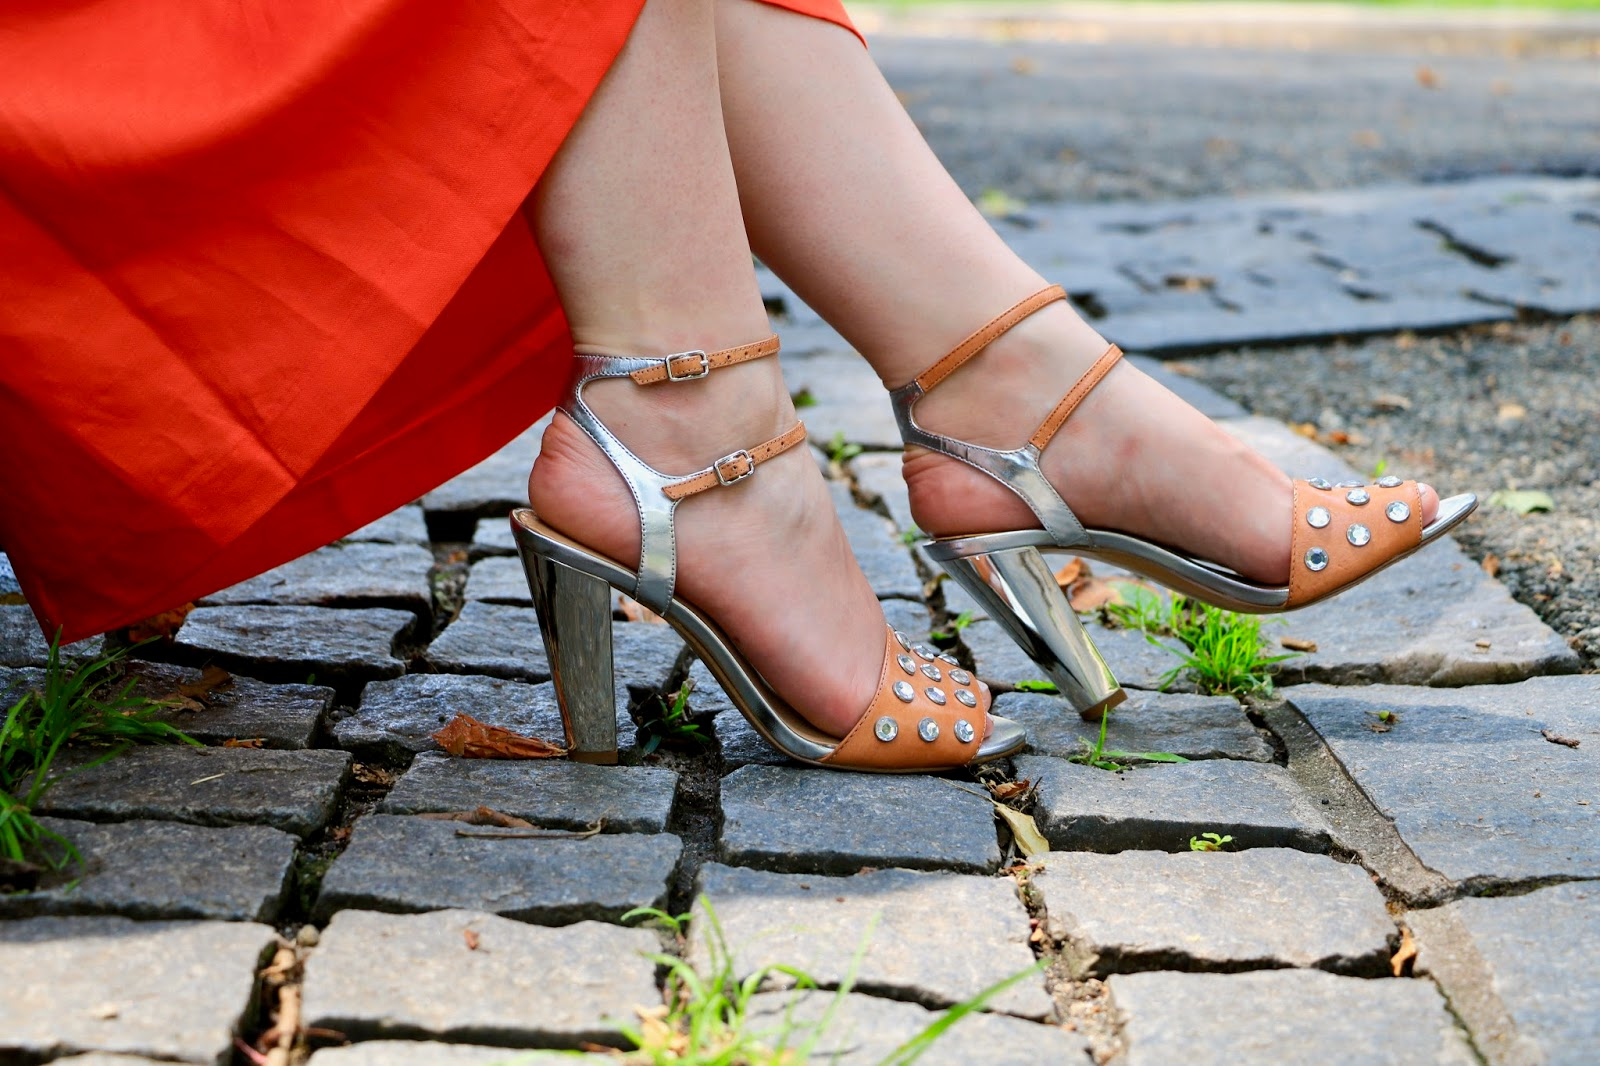 Fashion blogger Kathleen Harper of Kat's Fashion Fix wearing metallic embellished heels